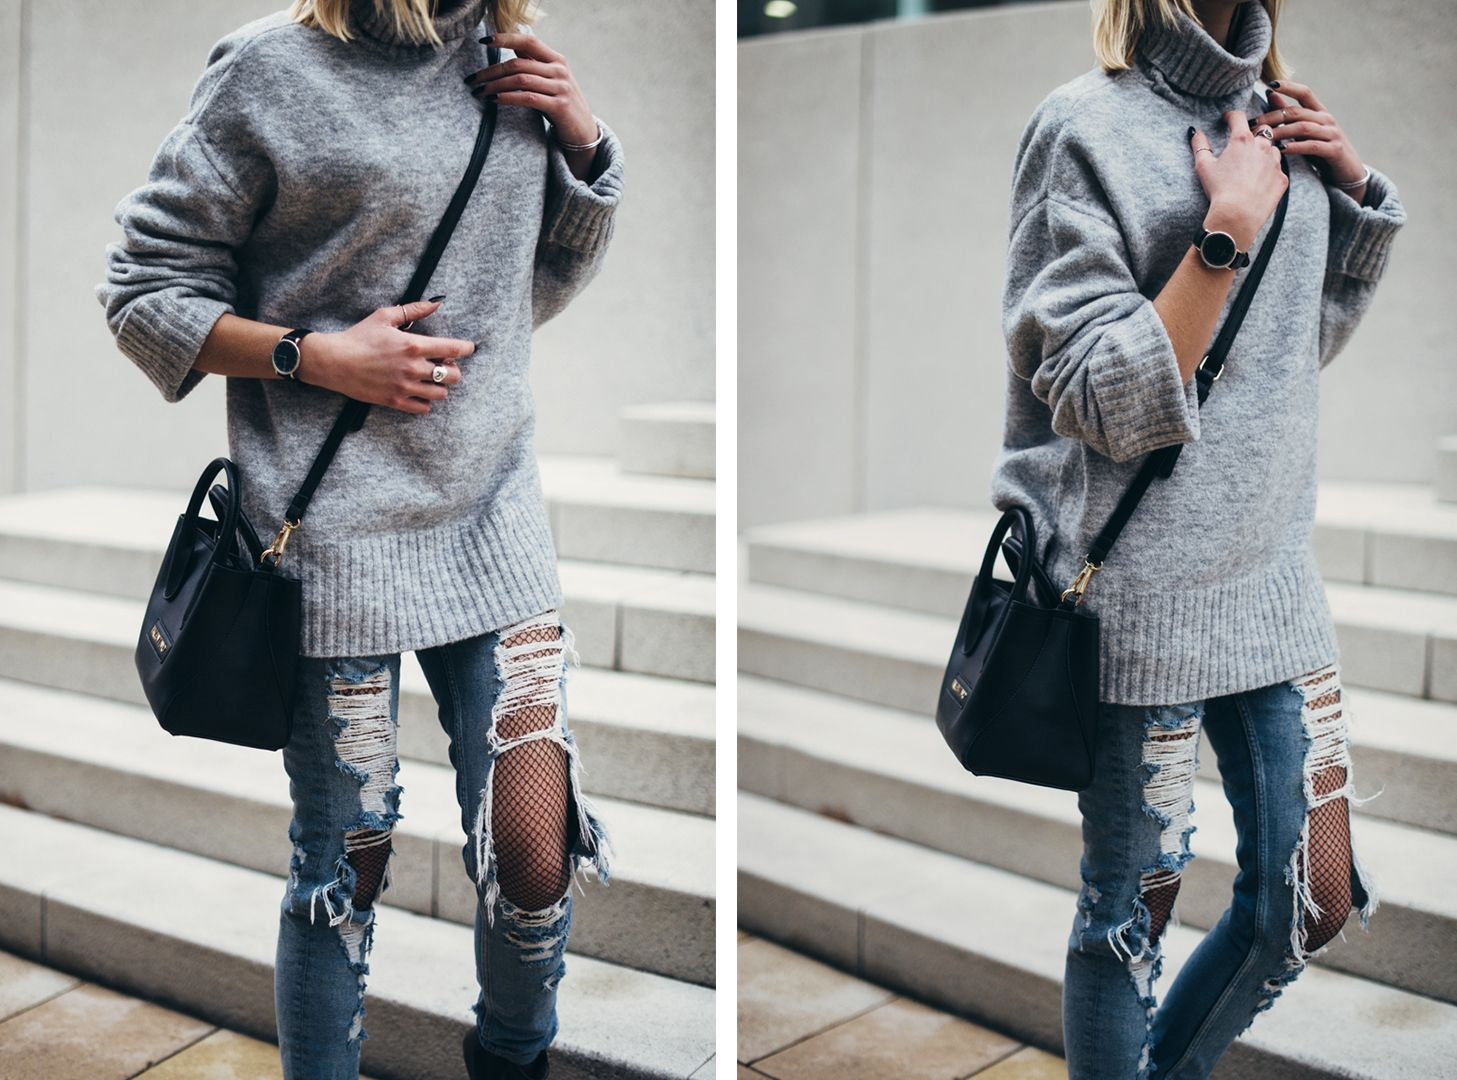 streetstyle trends oversized pullover destroyed jeans ash stiefelette netzstrumpfhose. Black Bedroom Furniture Sets. Home Design Ideas